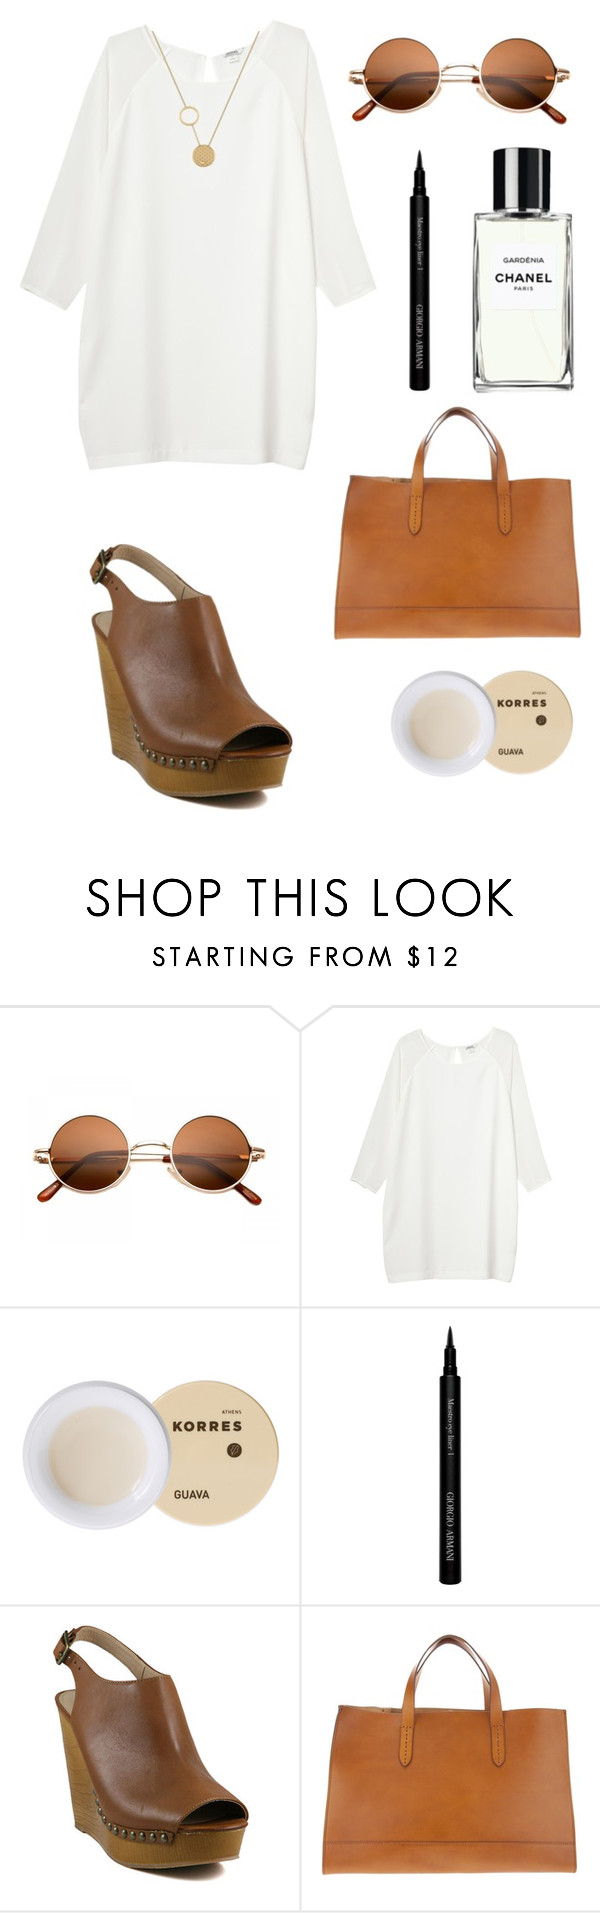 """tan"" by isobellily ❤ liked on Polyvore featuring Monki, Korres, Chanel, Giorgio Armani, Steve Madden, Ralph Lauren, Lacoste, women's clothing, women's fashion and women"